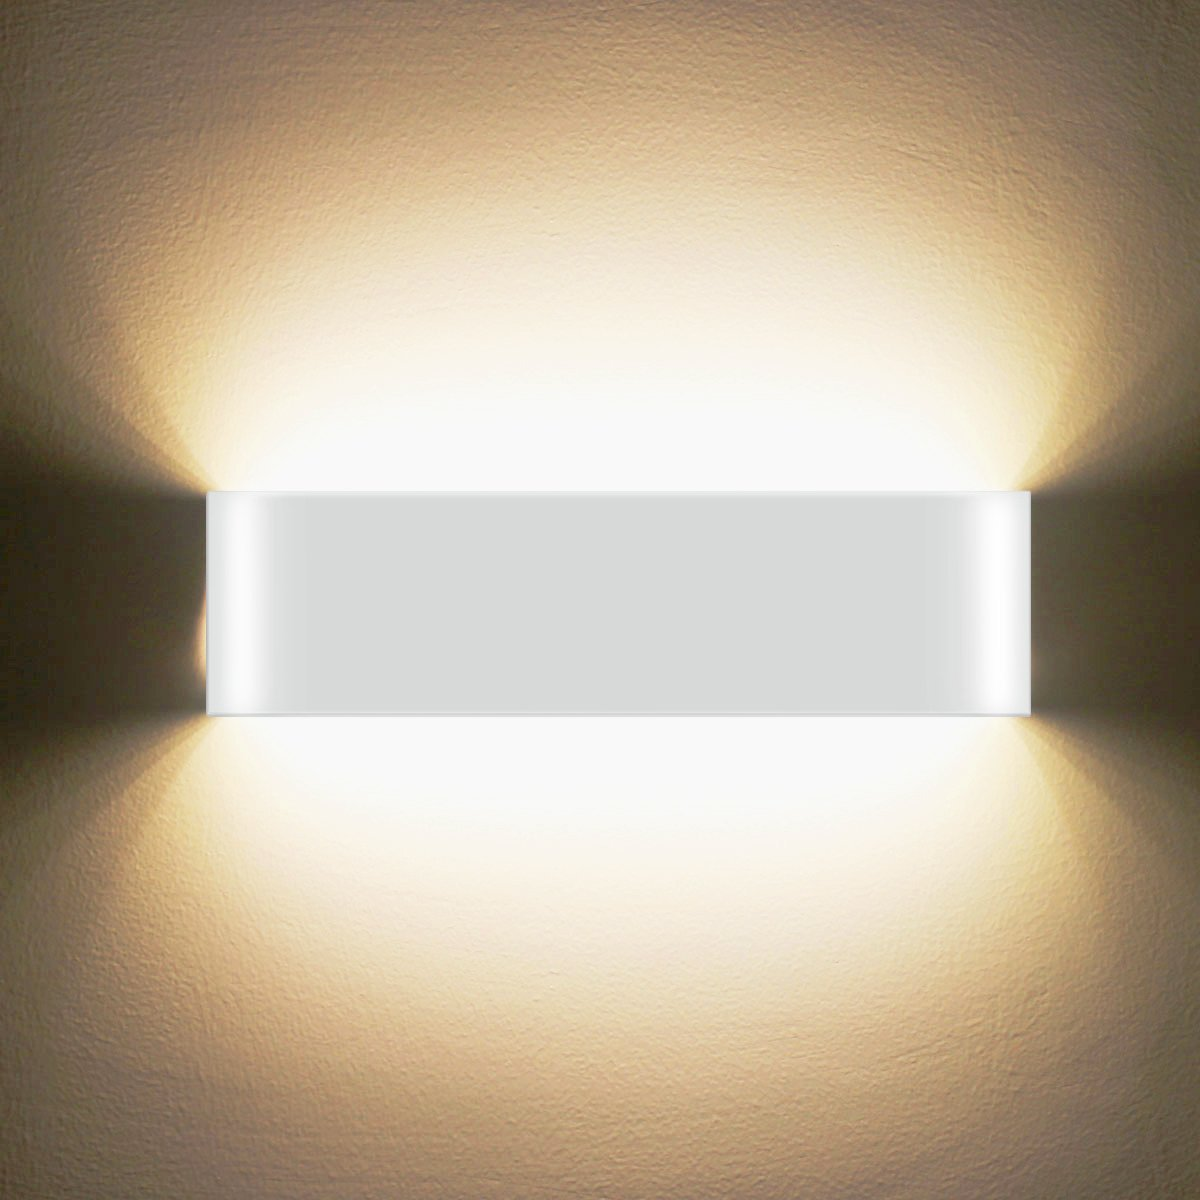 2018 Indoor Led Wall Sconces Light For Bedroom Bathroom Buy Sconce Lightsbathroom Sconcesbedroom Wall Lights Product On Alibabacom